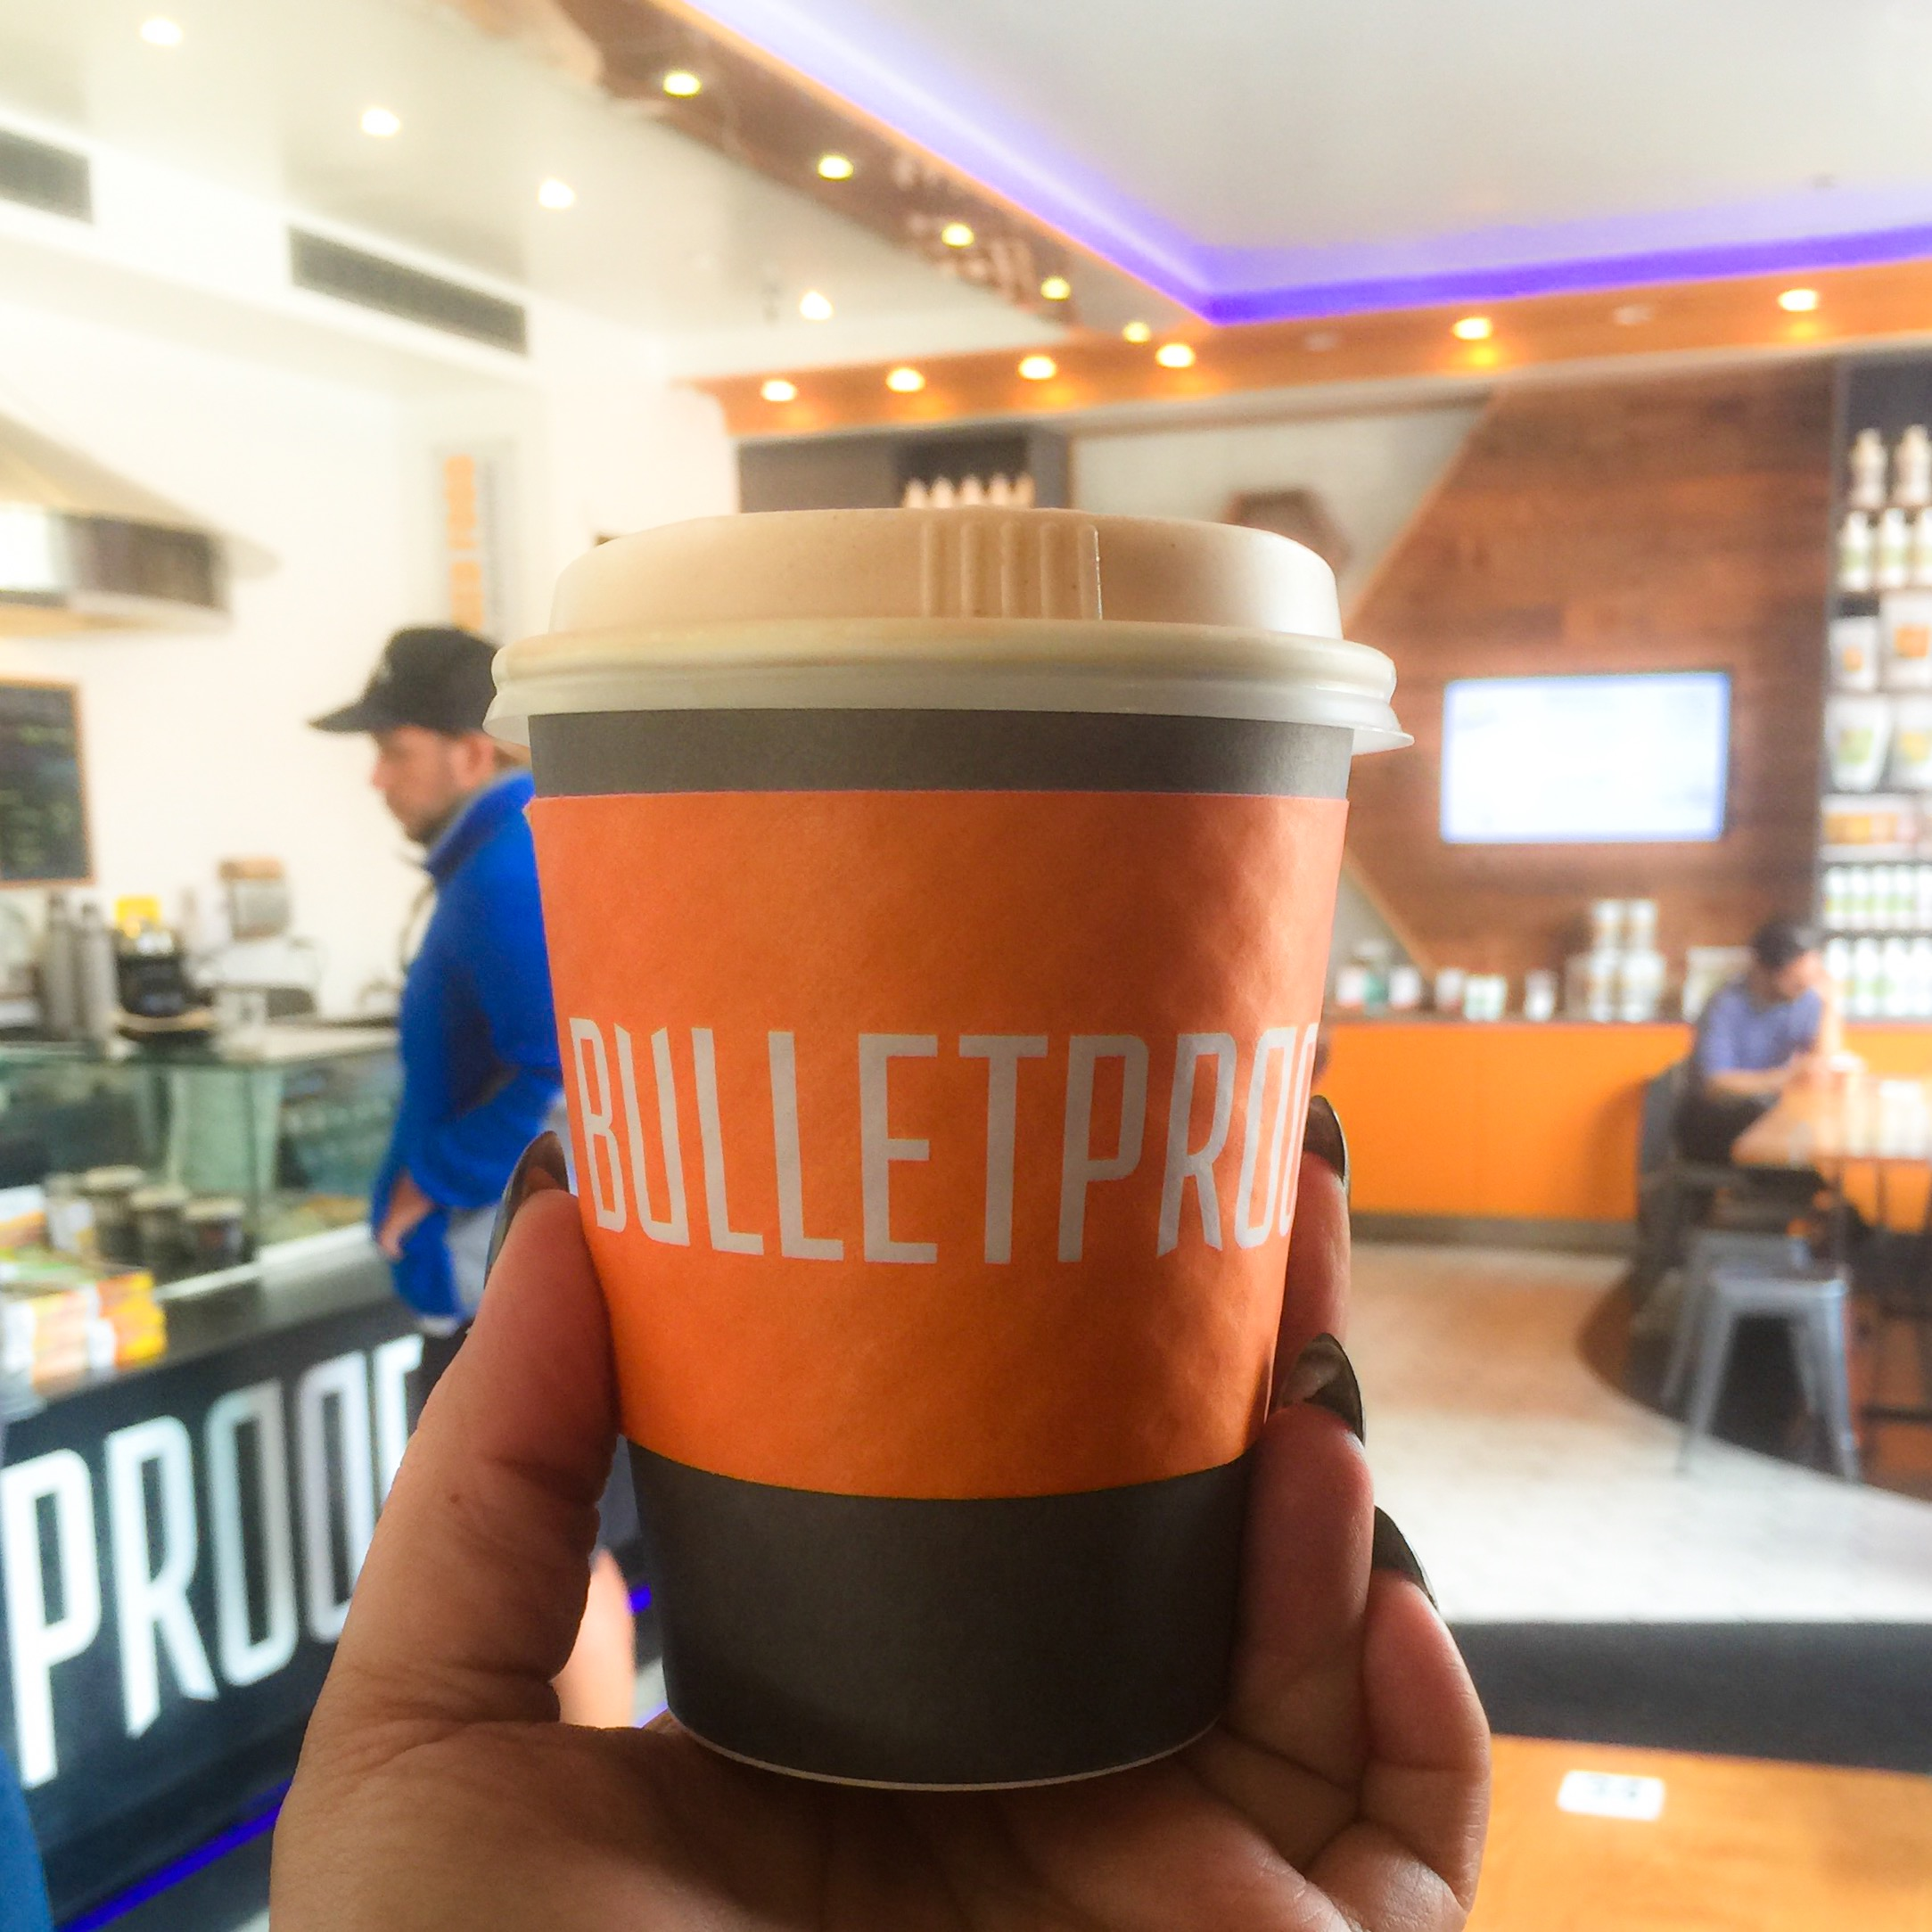 OBSESSED WITH BULLETPROOF COFFEE SHOP by Jen Fisch